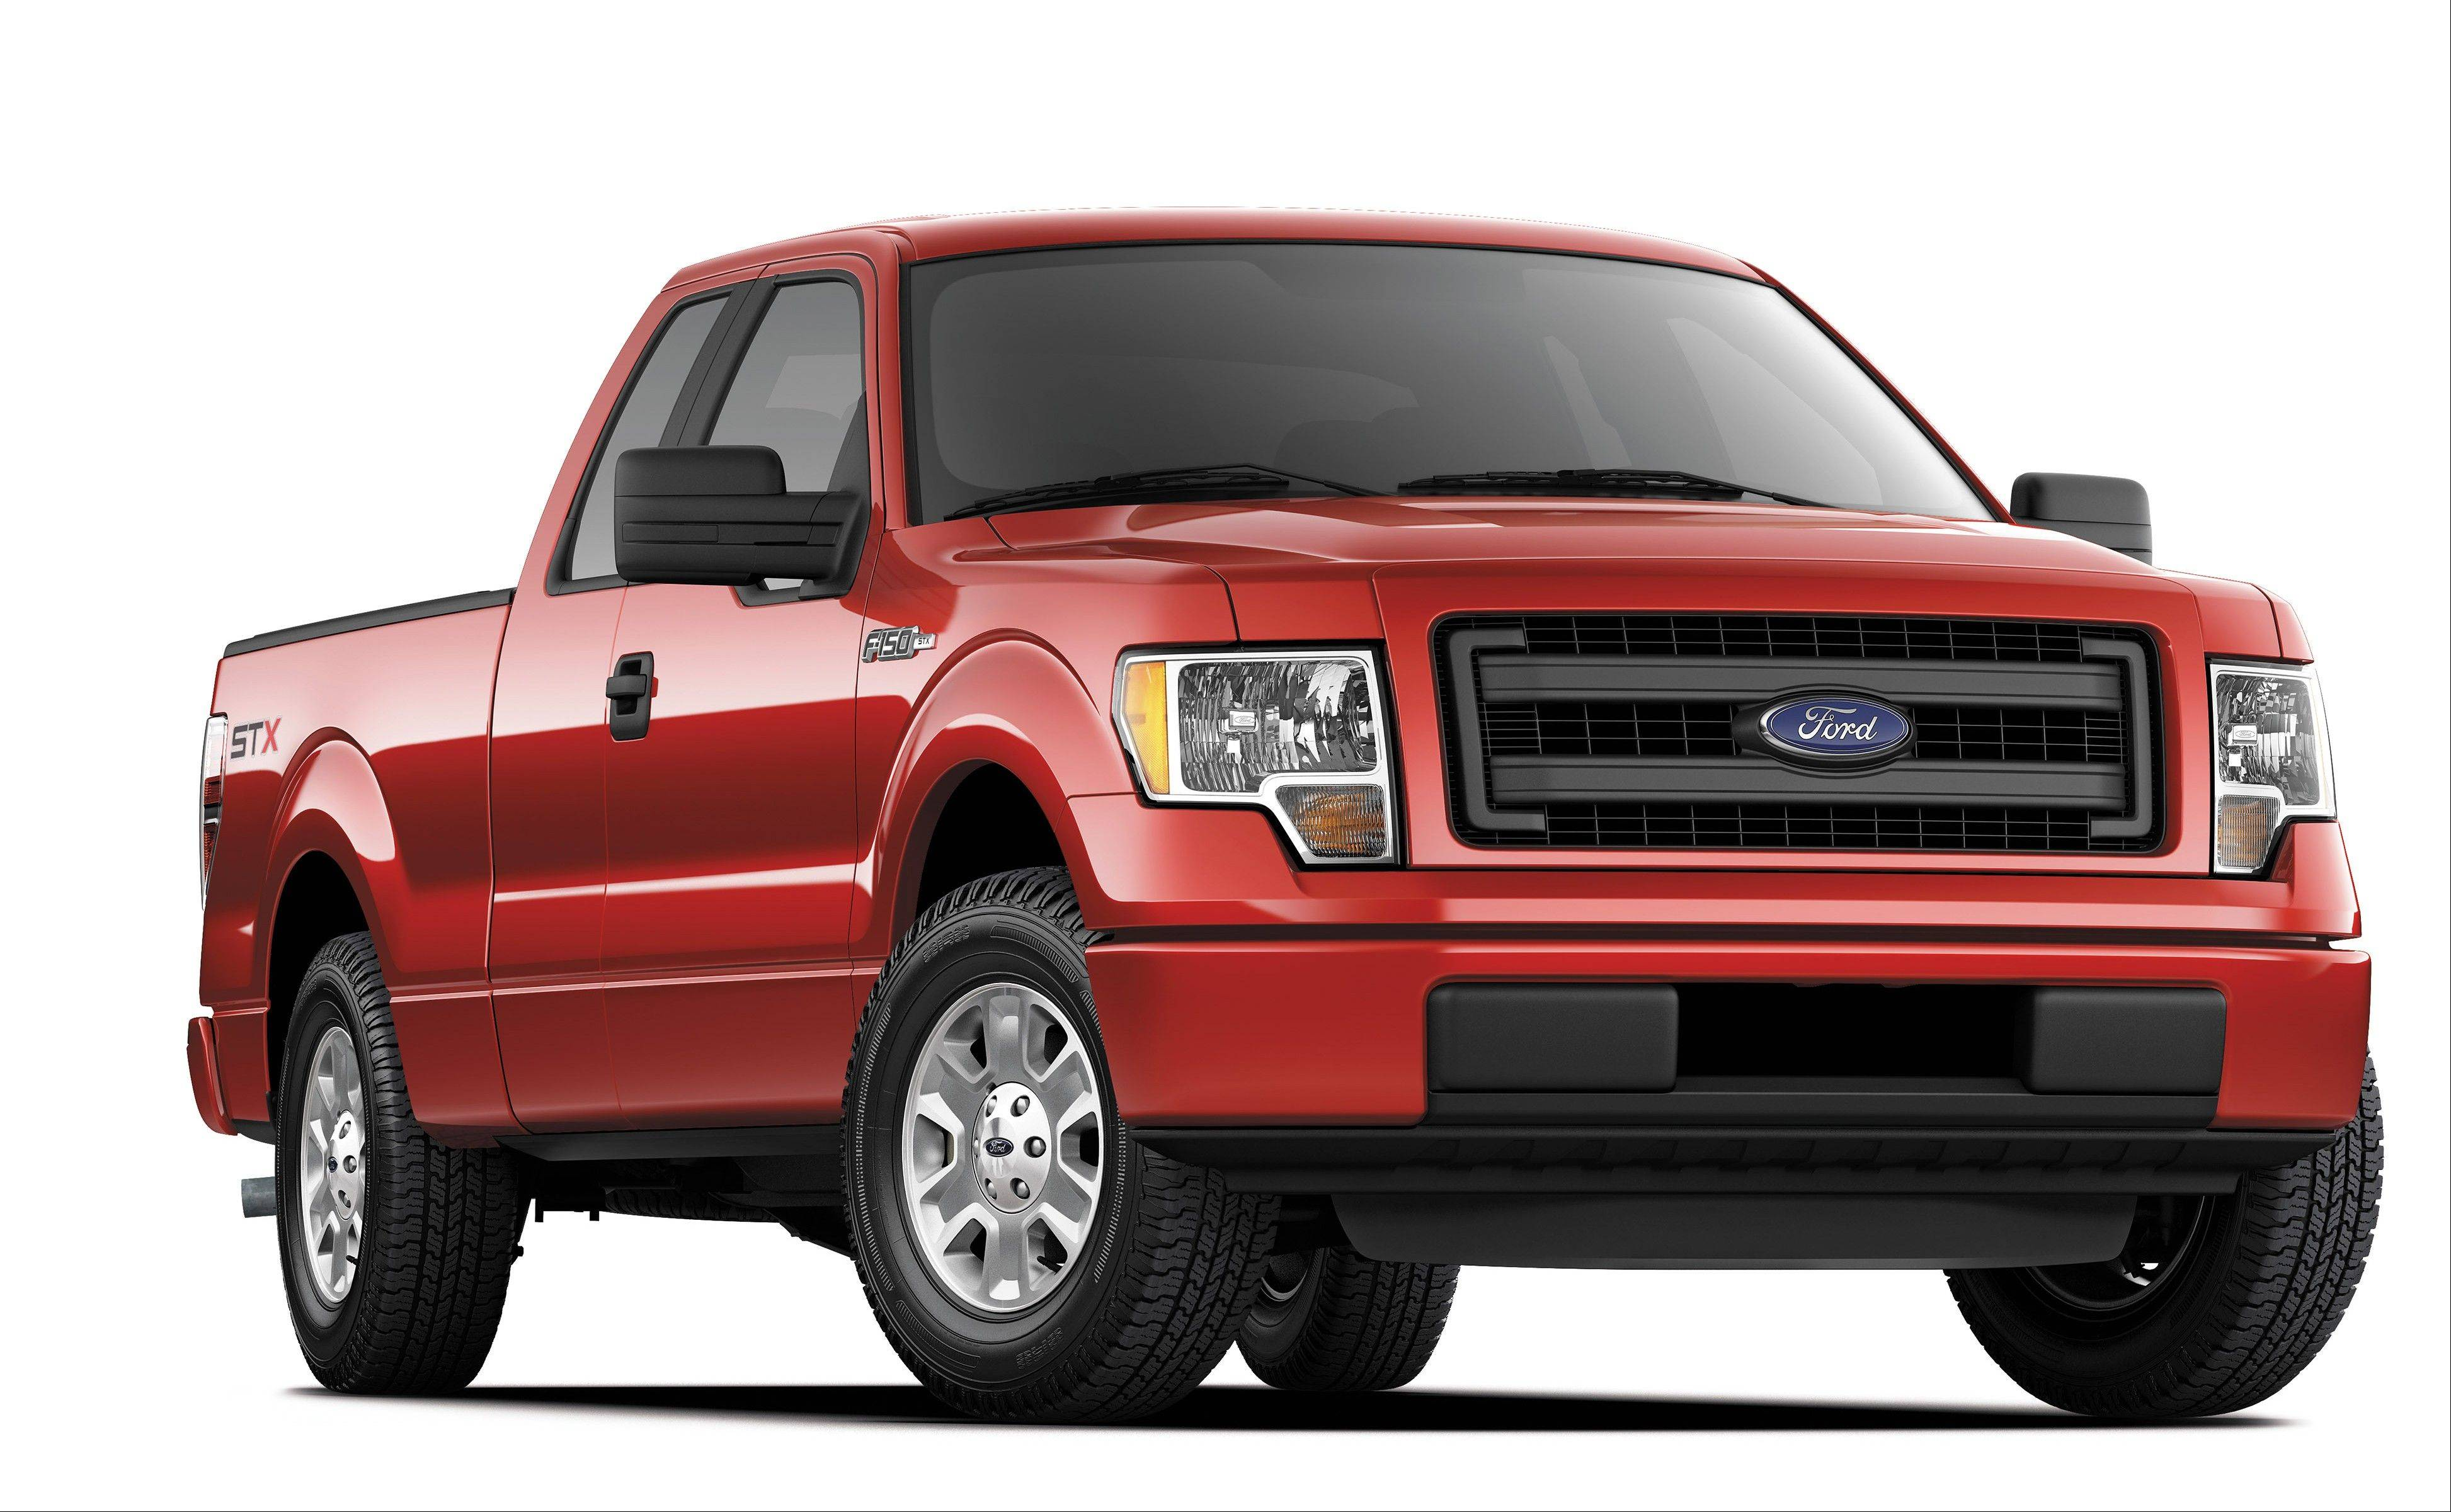 A 2014 Ford F-150 STX SuperCrew truck. Americans are paying record prices for new cars and trucks.